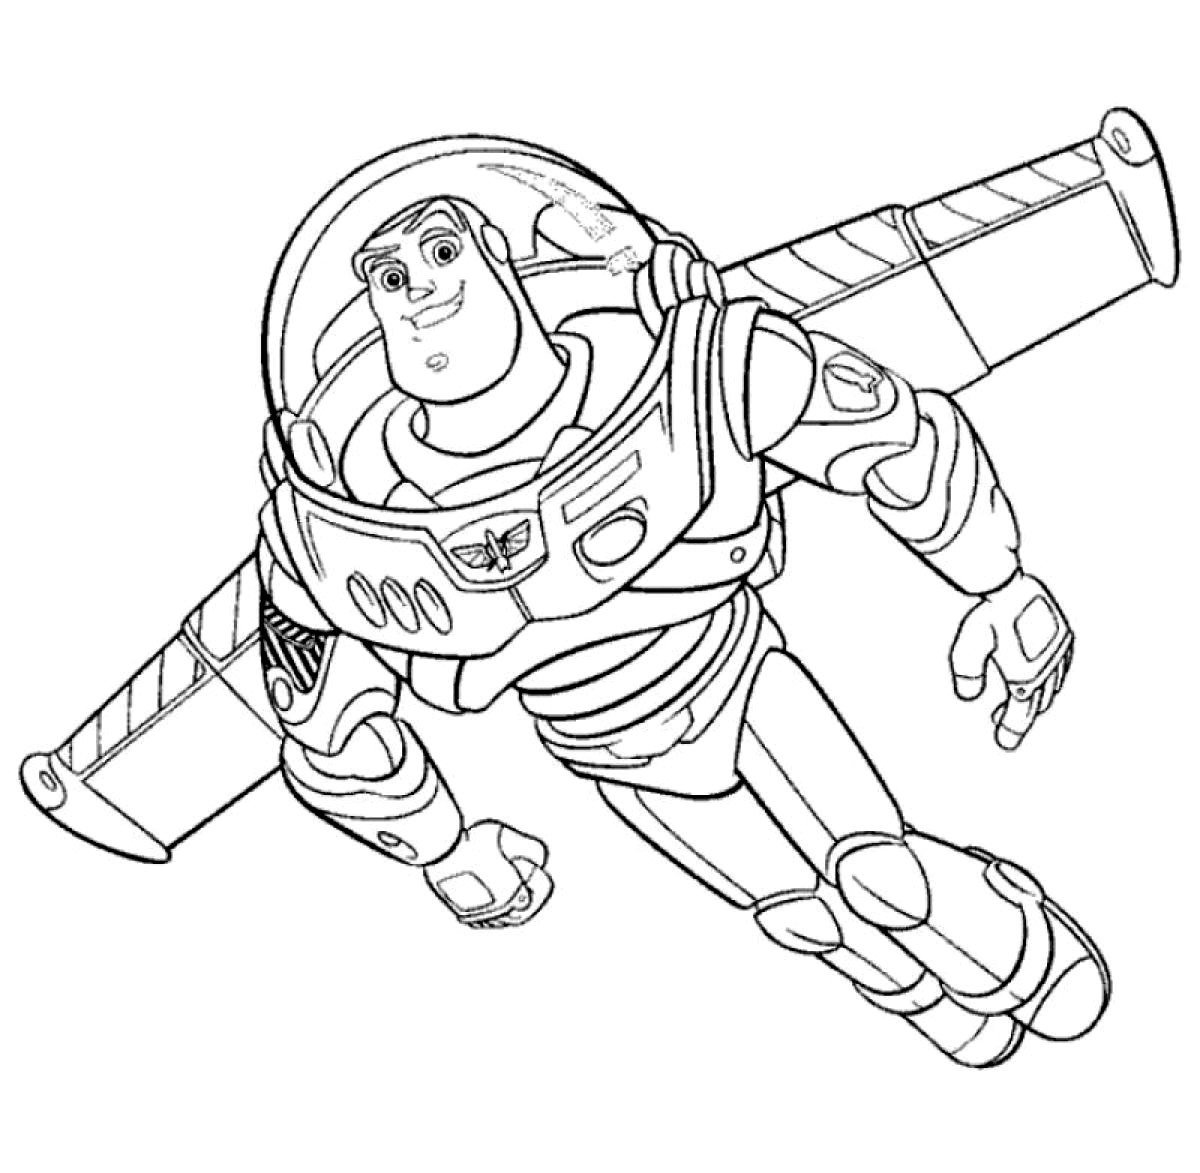 Printable Toy Story Coloring Pages Coloring Me Story Coloring Pages Printable